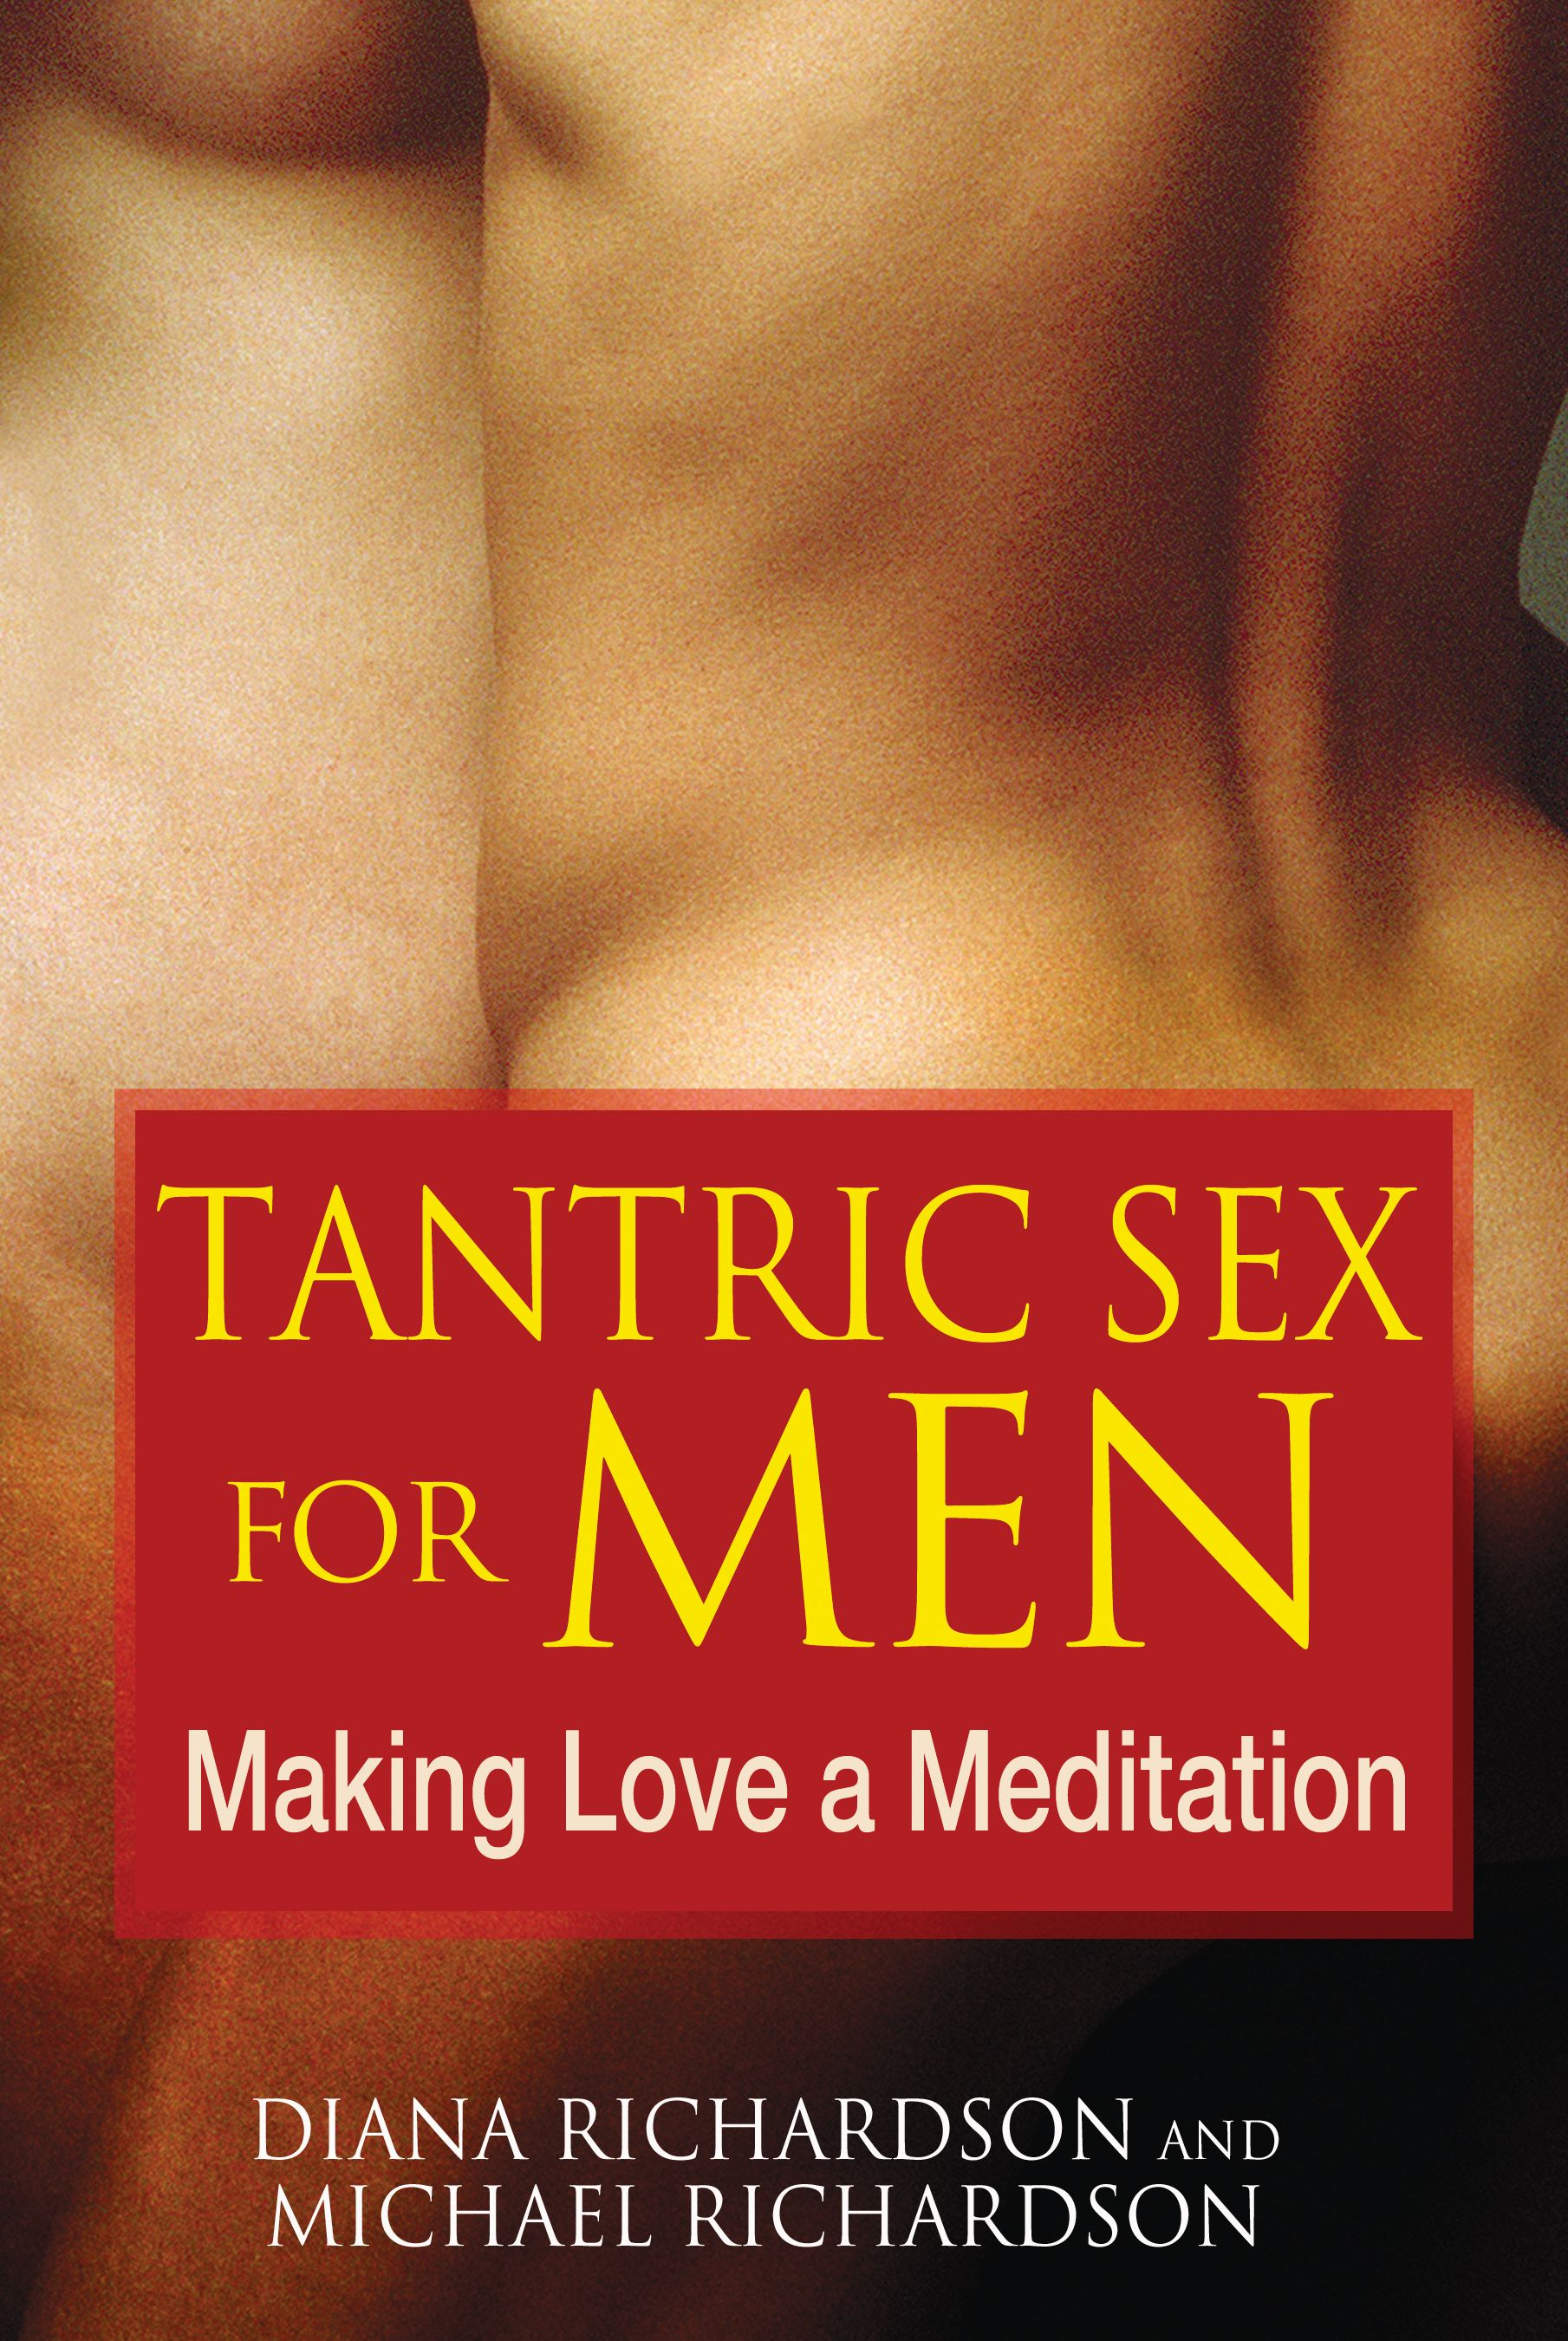 Tantric-sex-for-men-9781594773112_hr